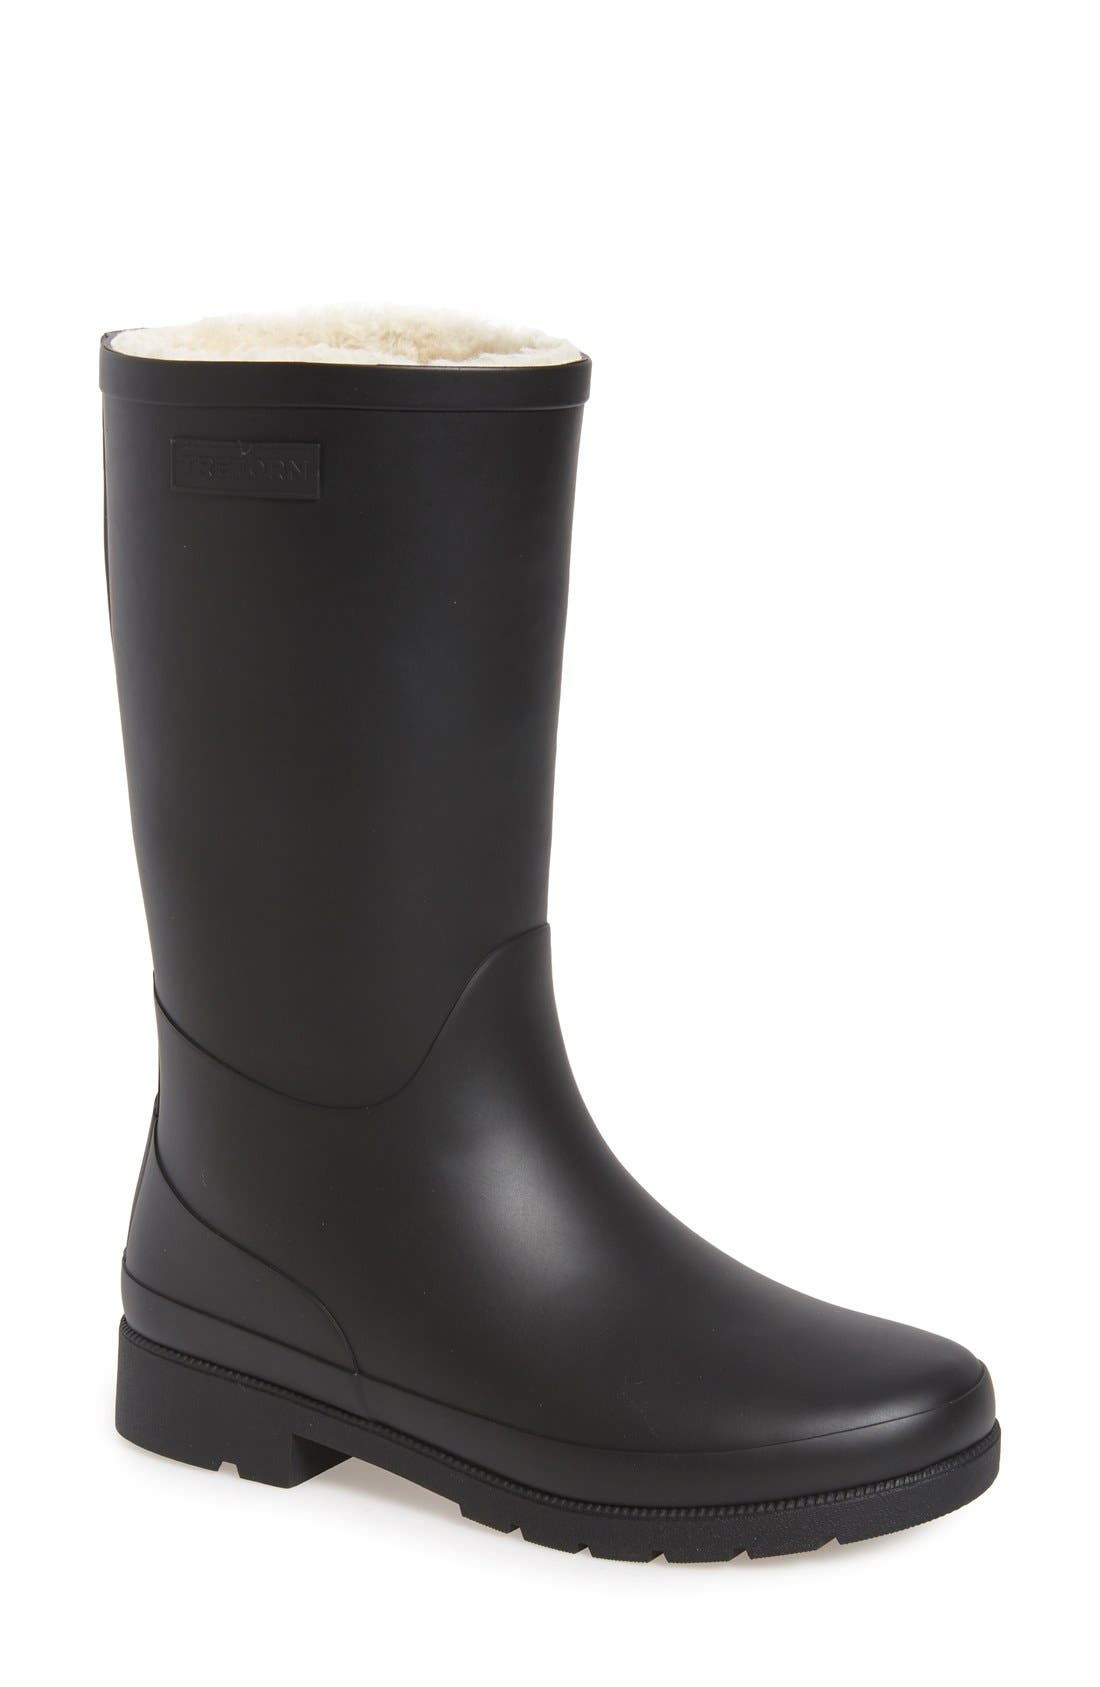 TRETORN,                             'Libby' Rain Boot,                             Main thumbnail 1, color,                             001